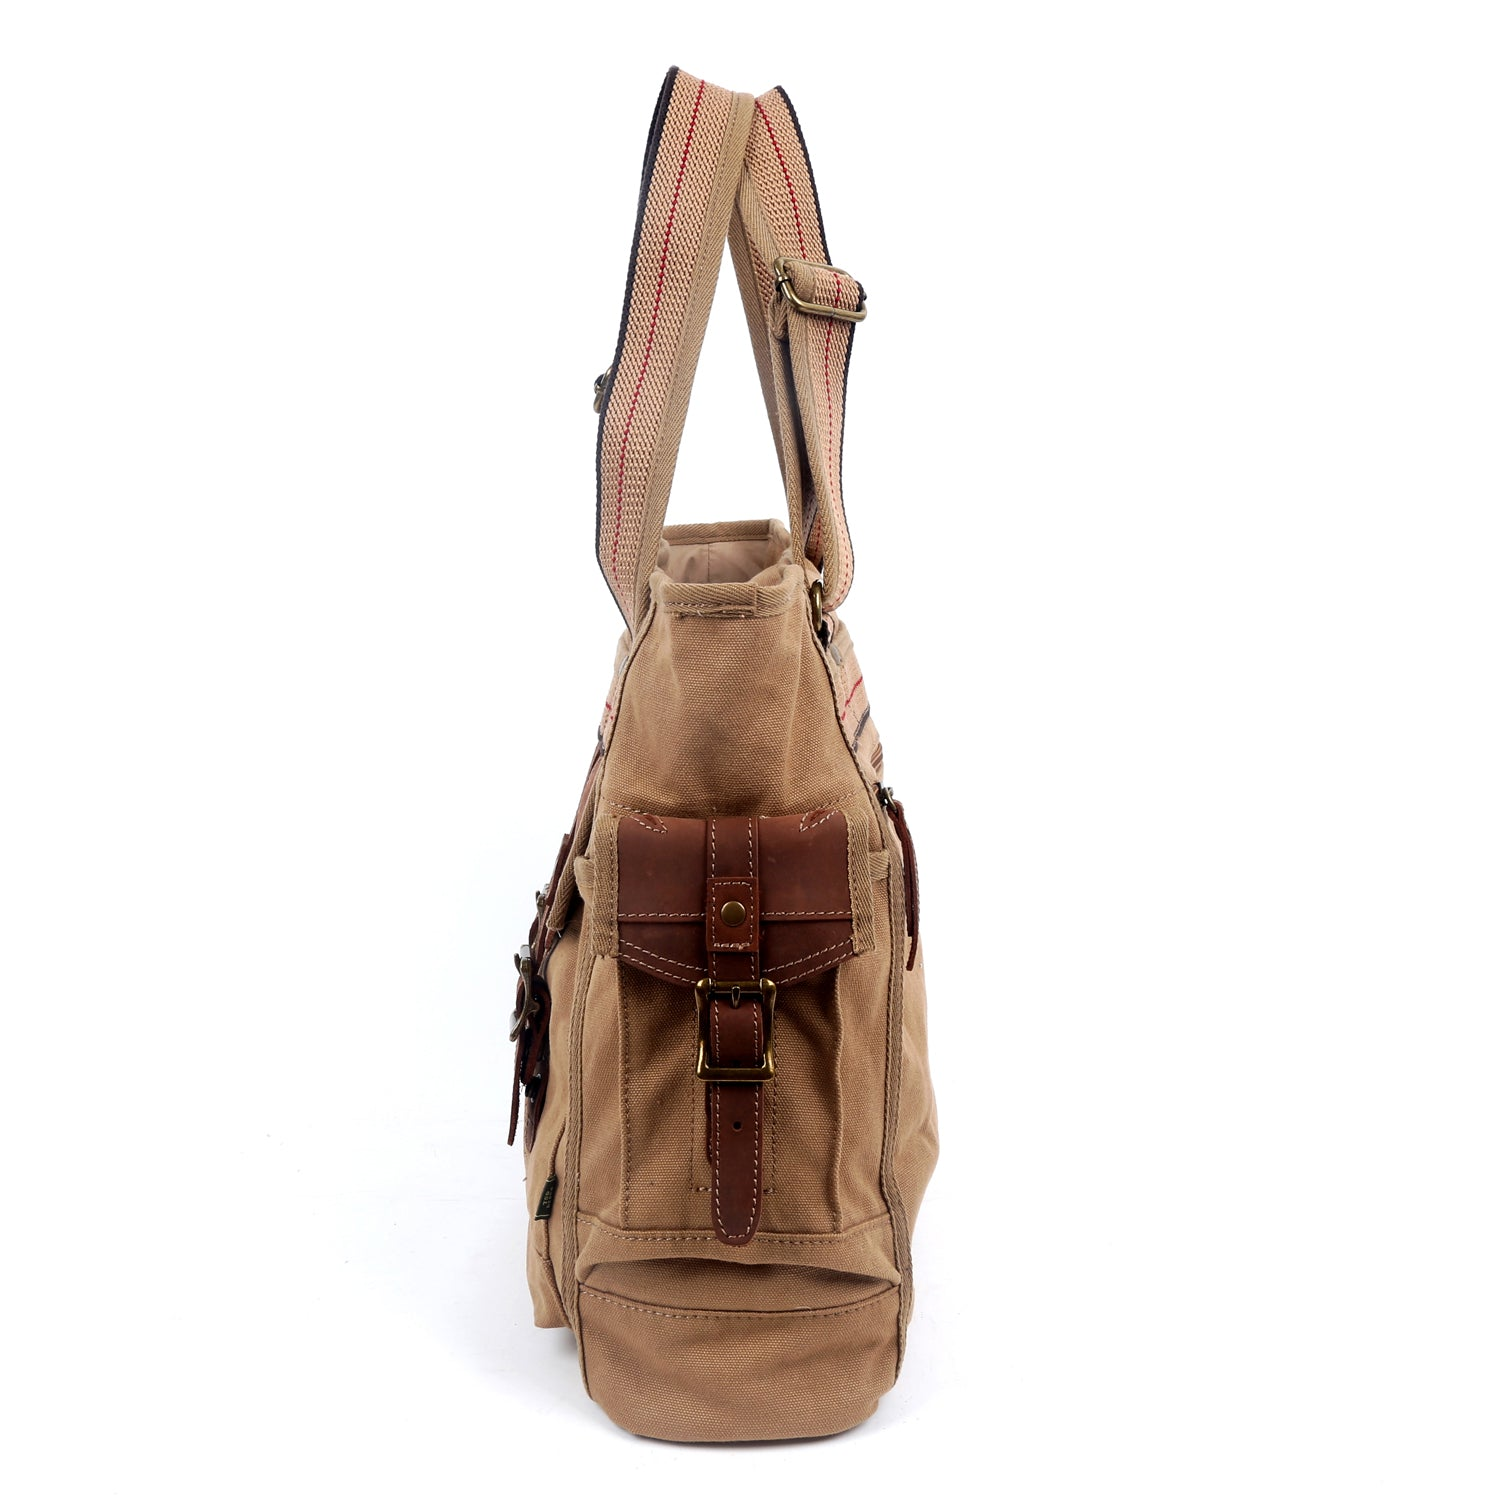 Turtle Ridge Canvas Tote